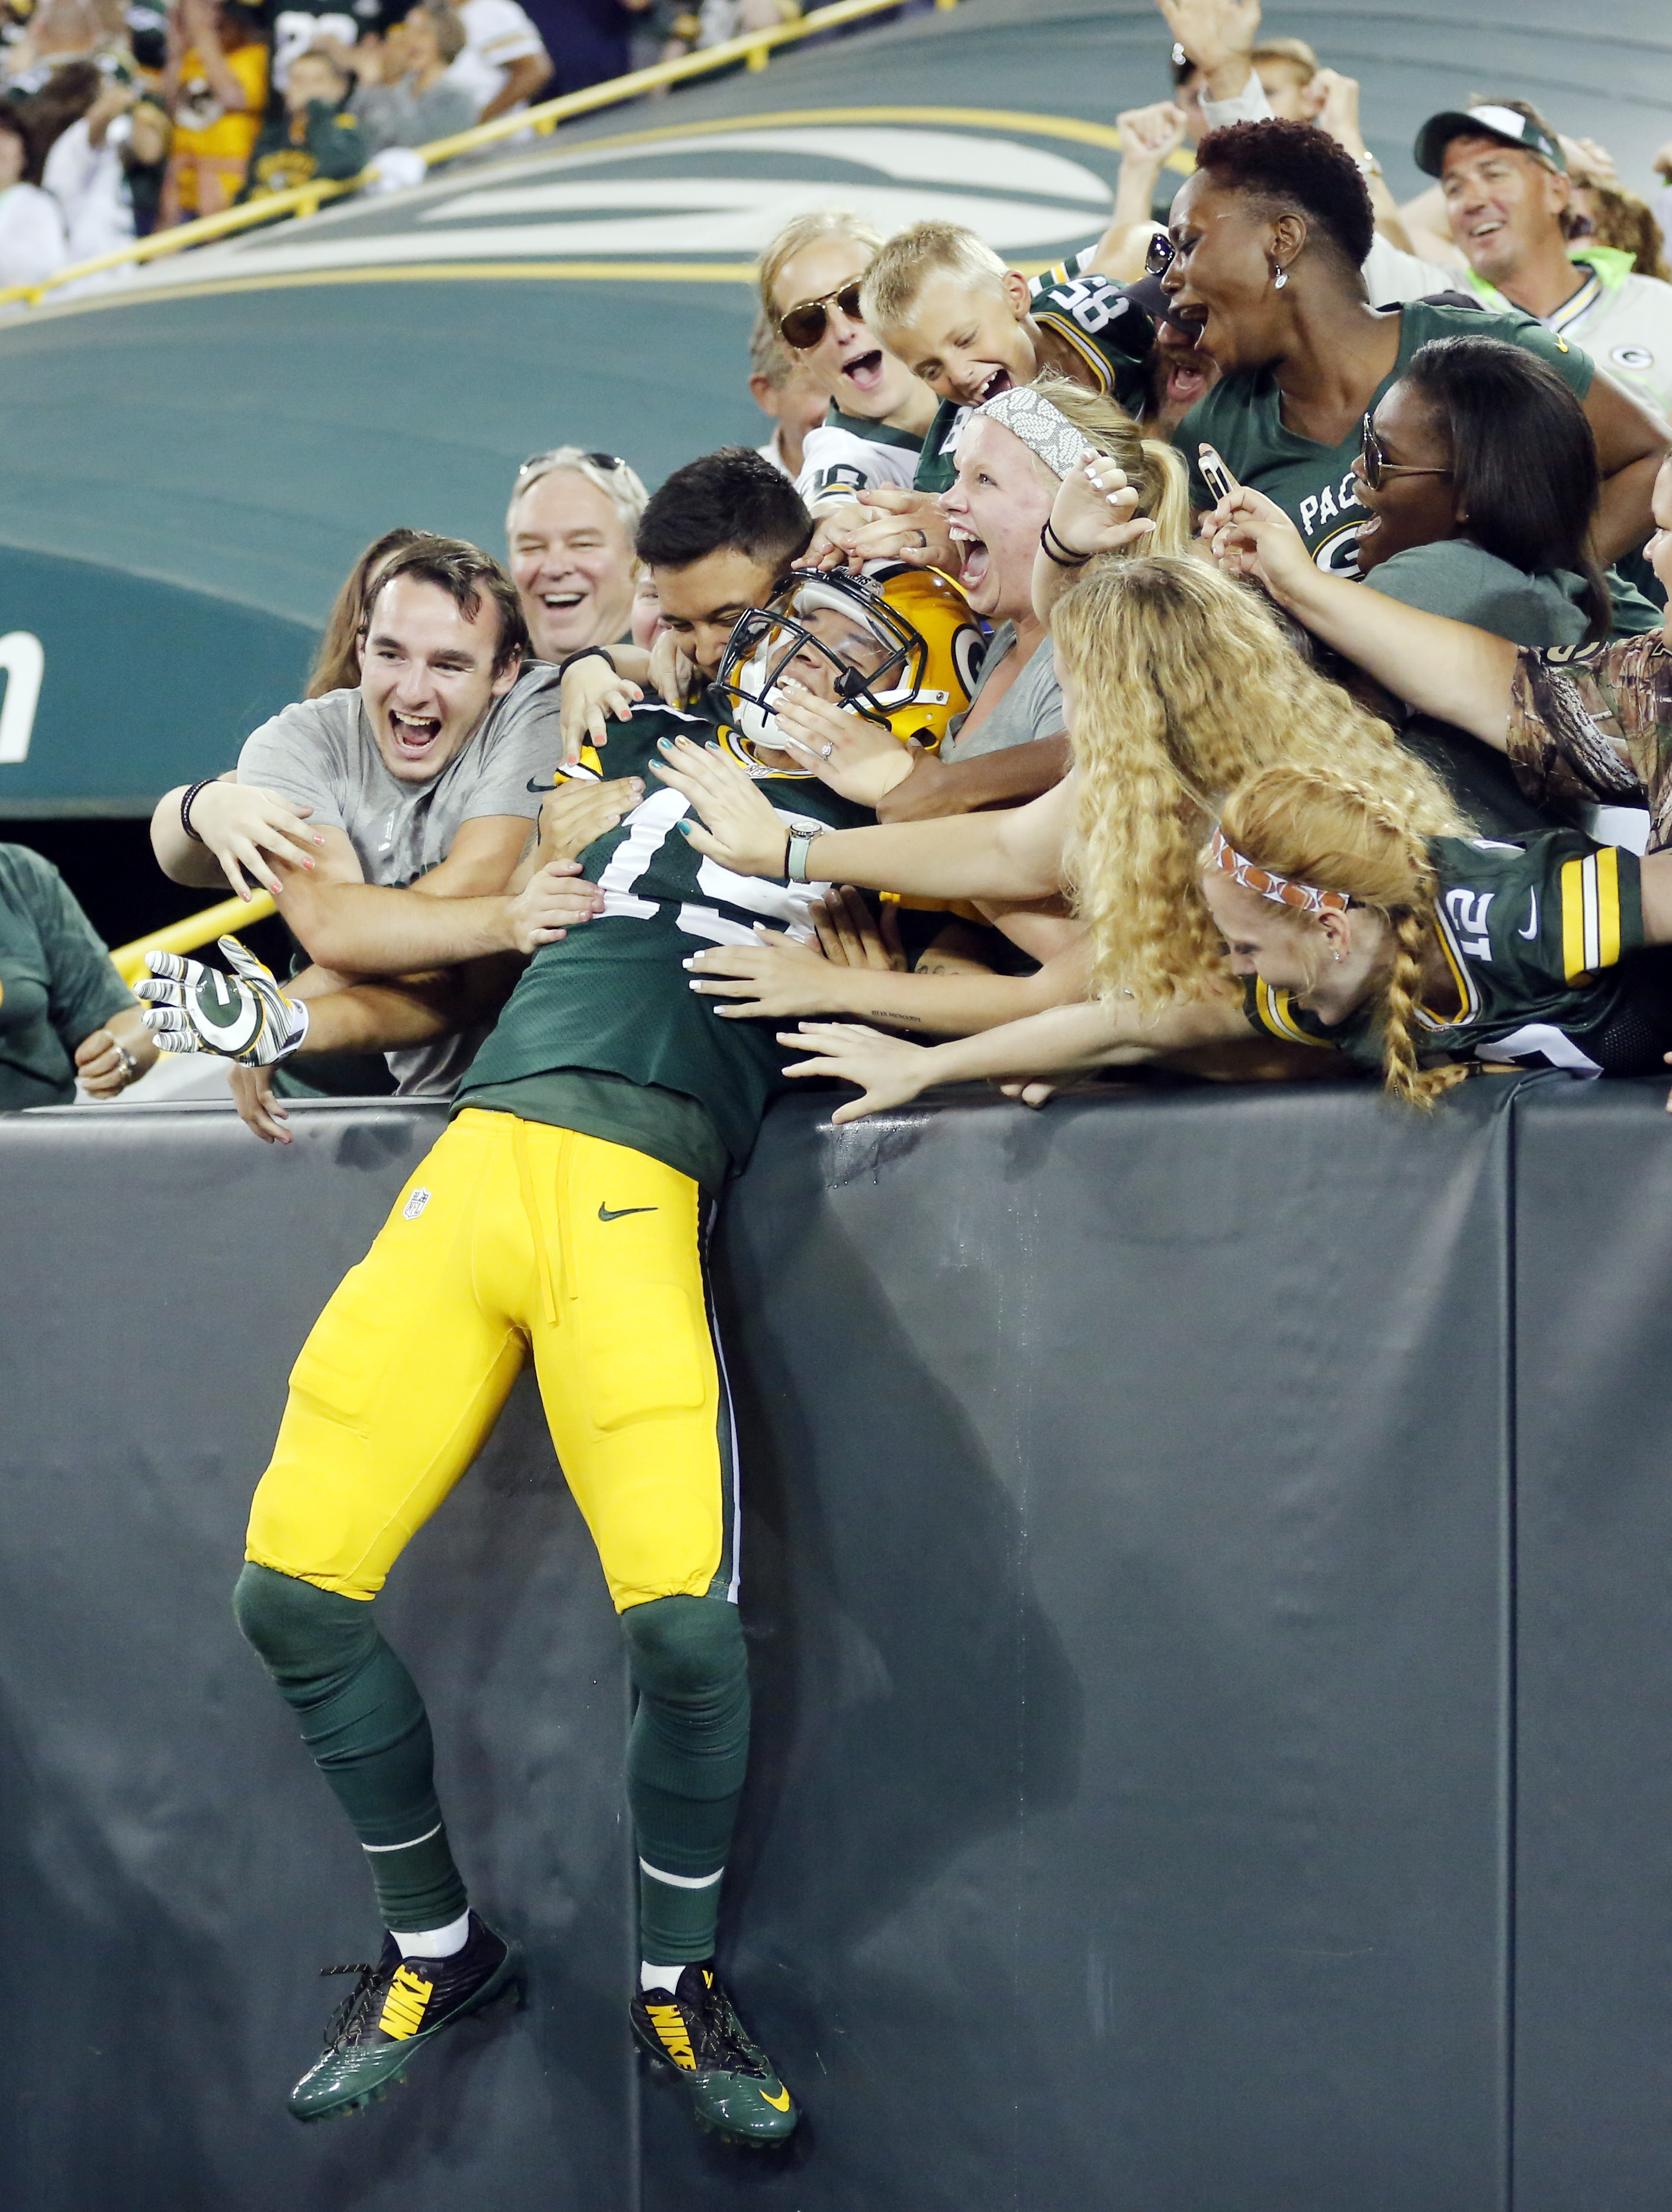 Green Bay Packers' Myles White celebrates his touchdown catch with fans during the second half of an NFL preseason football game against the New Orleans Saints Thursday, Sept. 3, 2015, in Green Bay, Wis. (AP Photo/Jeffrey Phelps)